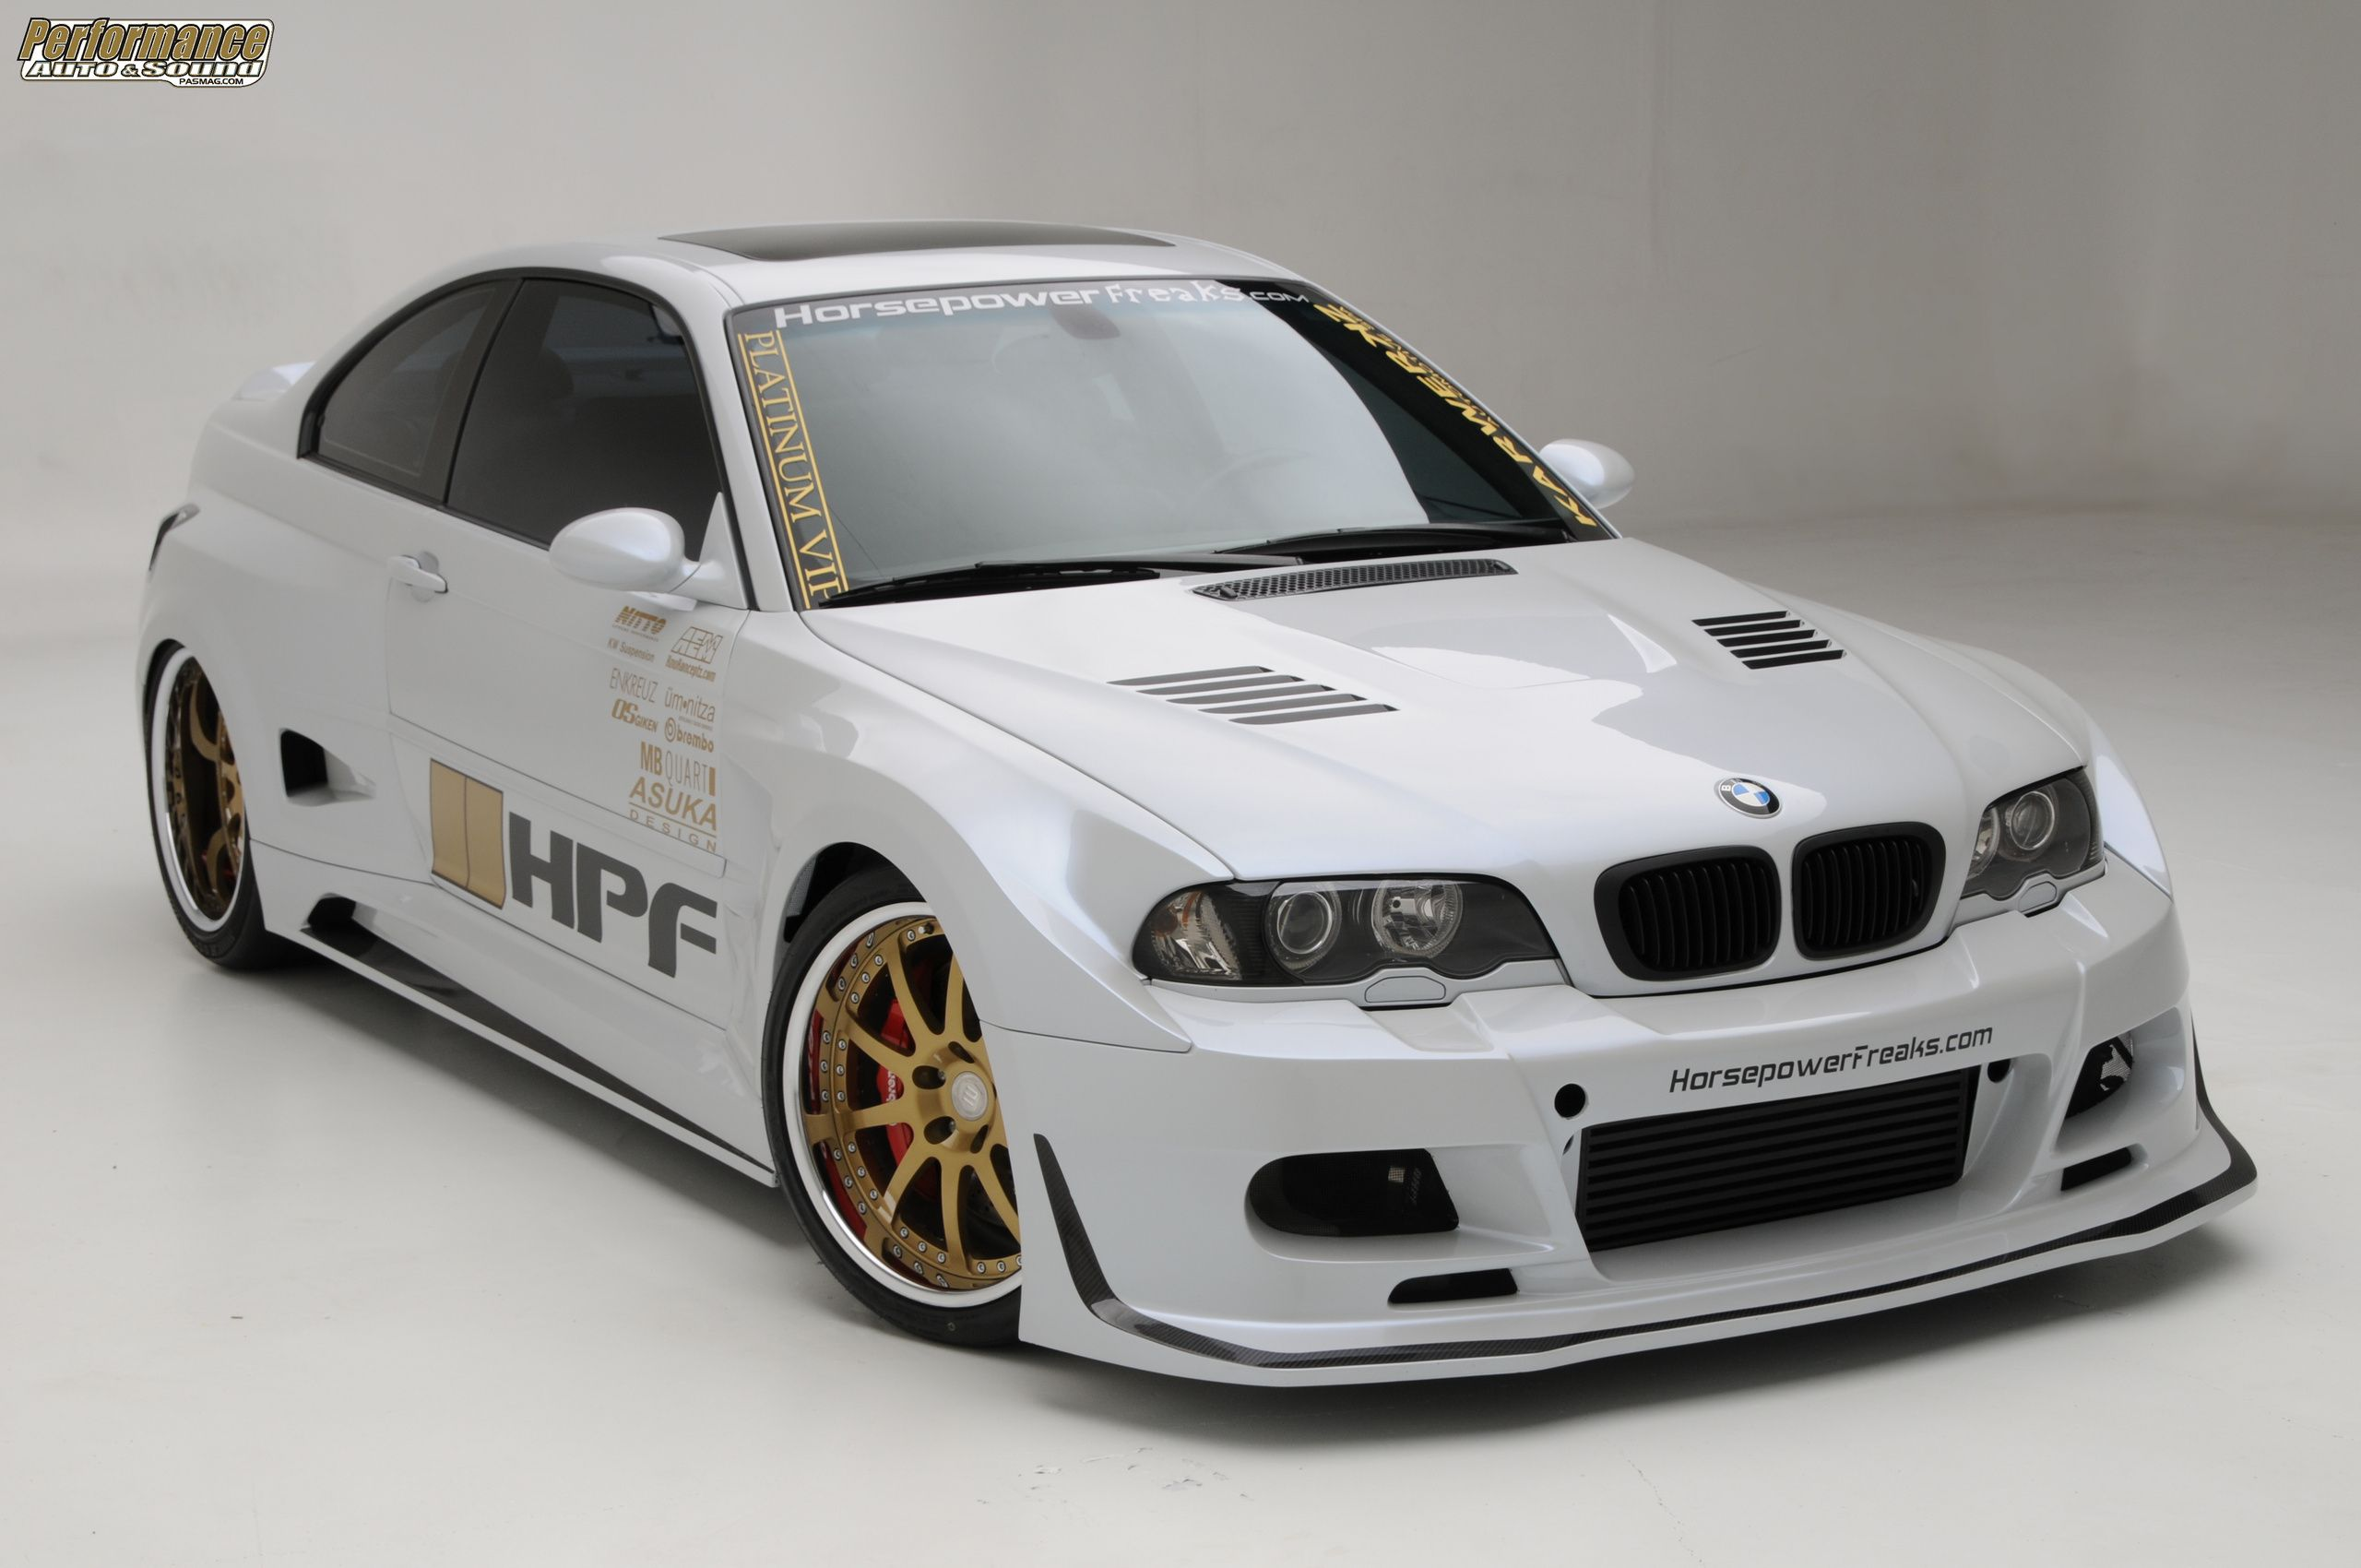 Bmw m3 e46 turbo hottest bmwstories out there share yours